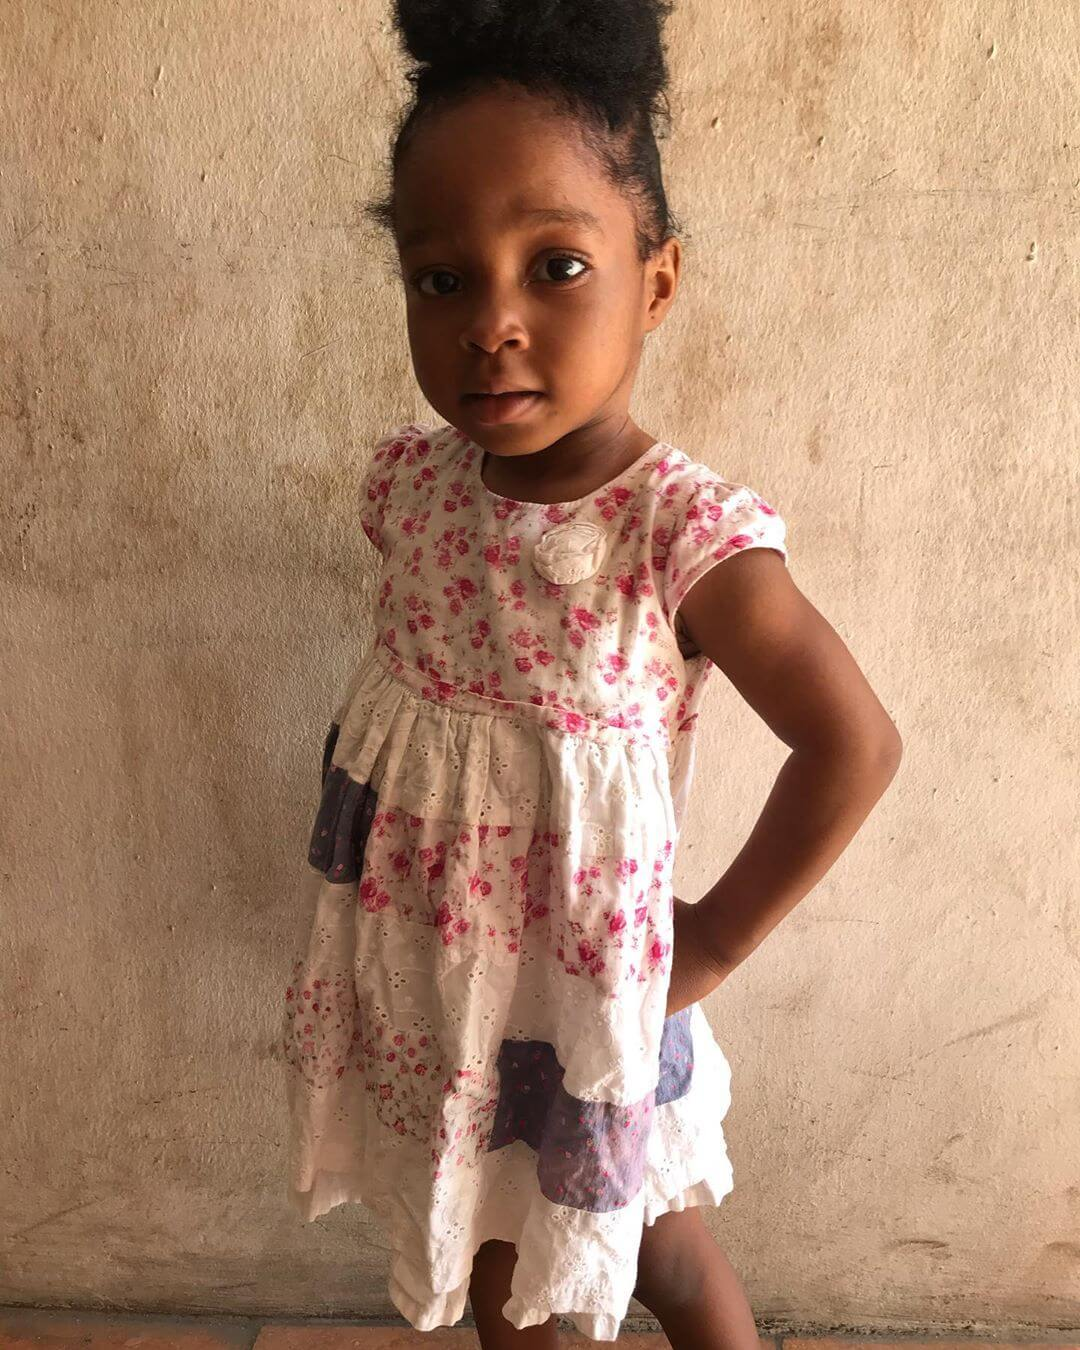 The 3-year-old daughter, Stephanie Chidinma